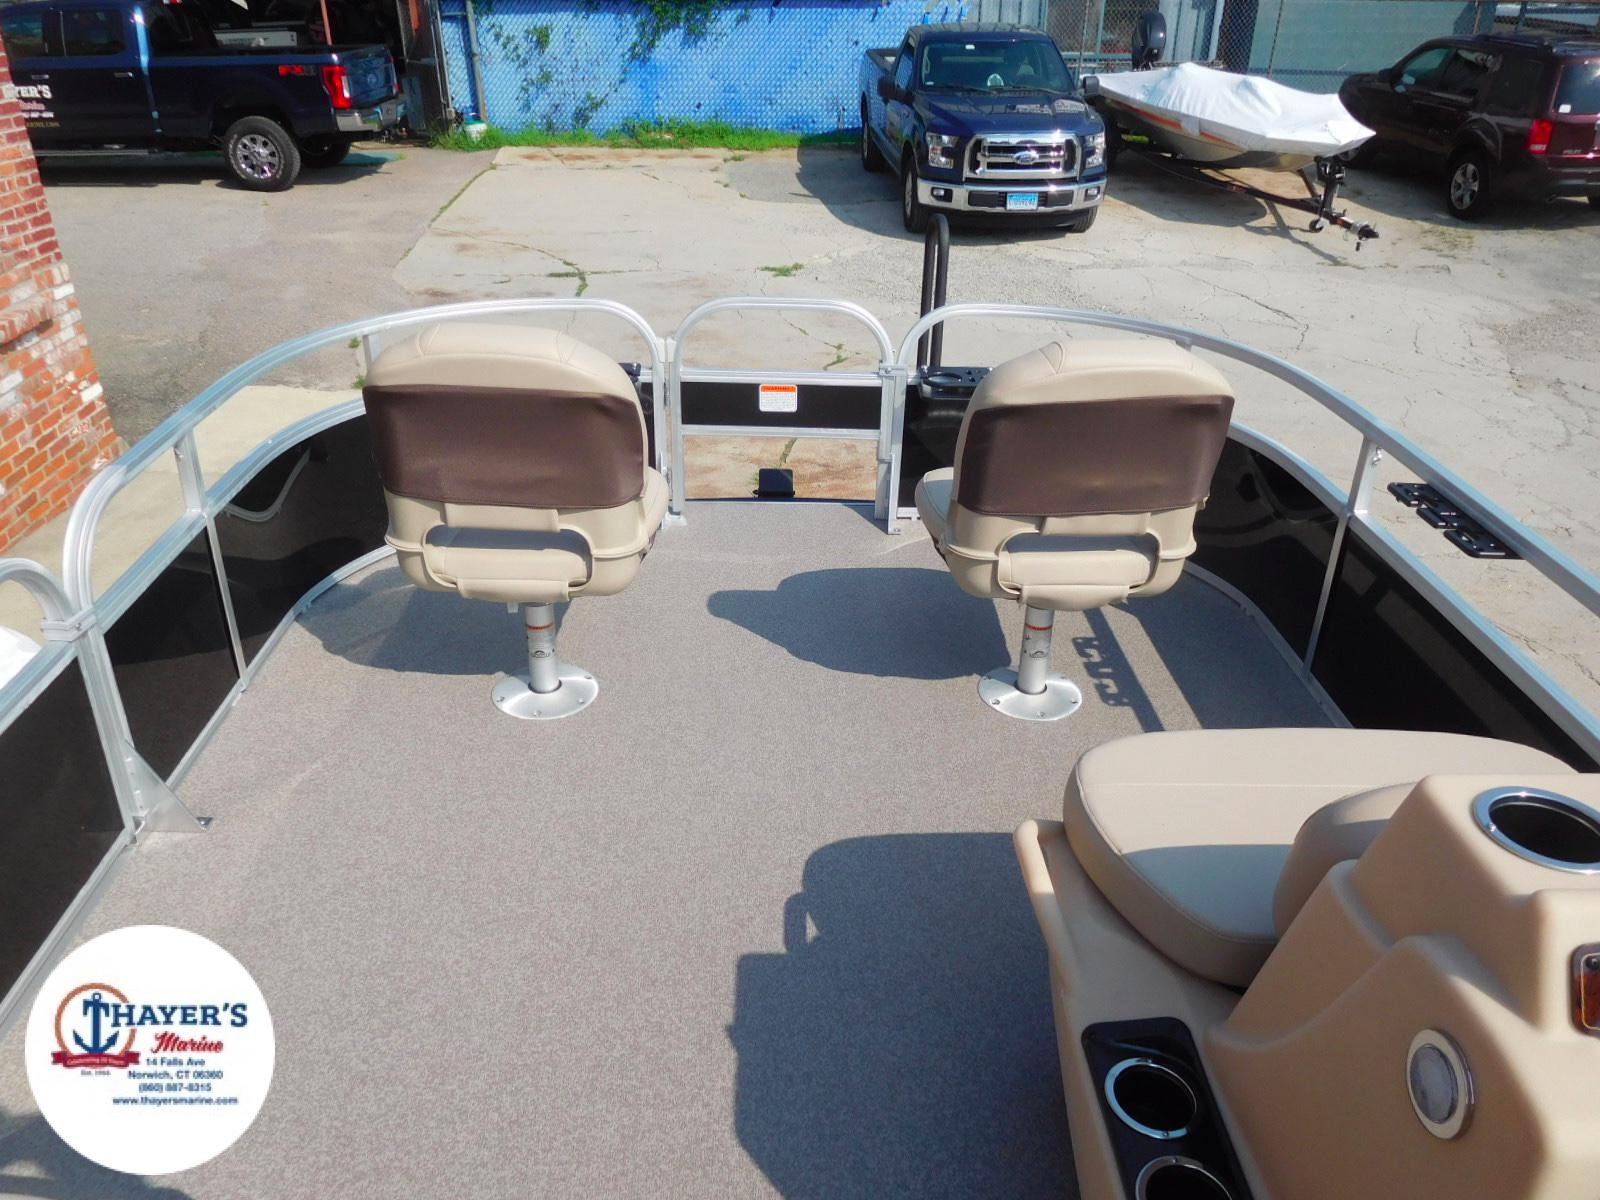 2018 Sun Tracker boat for sale, model of the boat is Bass Buggy 18 DLX & Image # 32 of 35